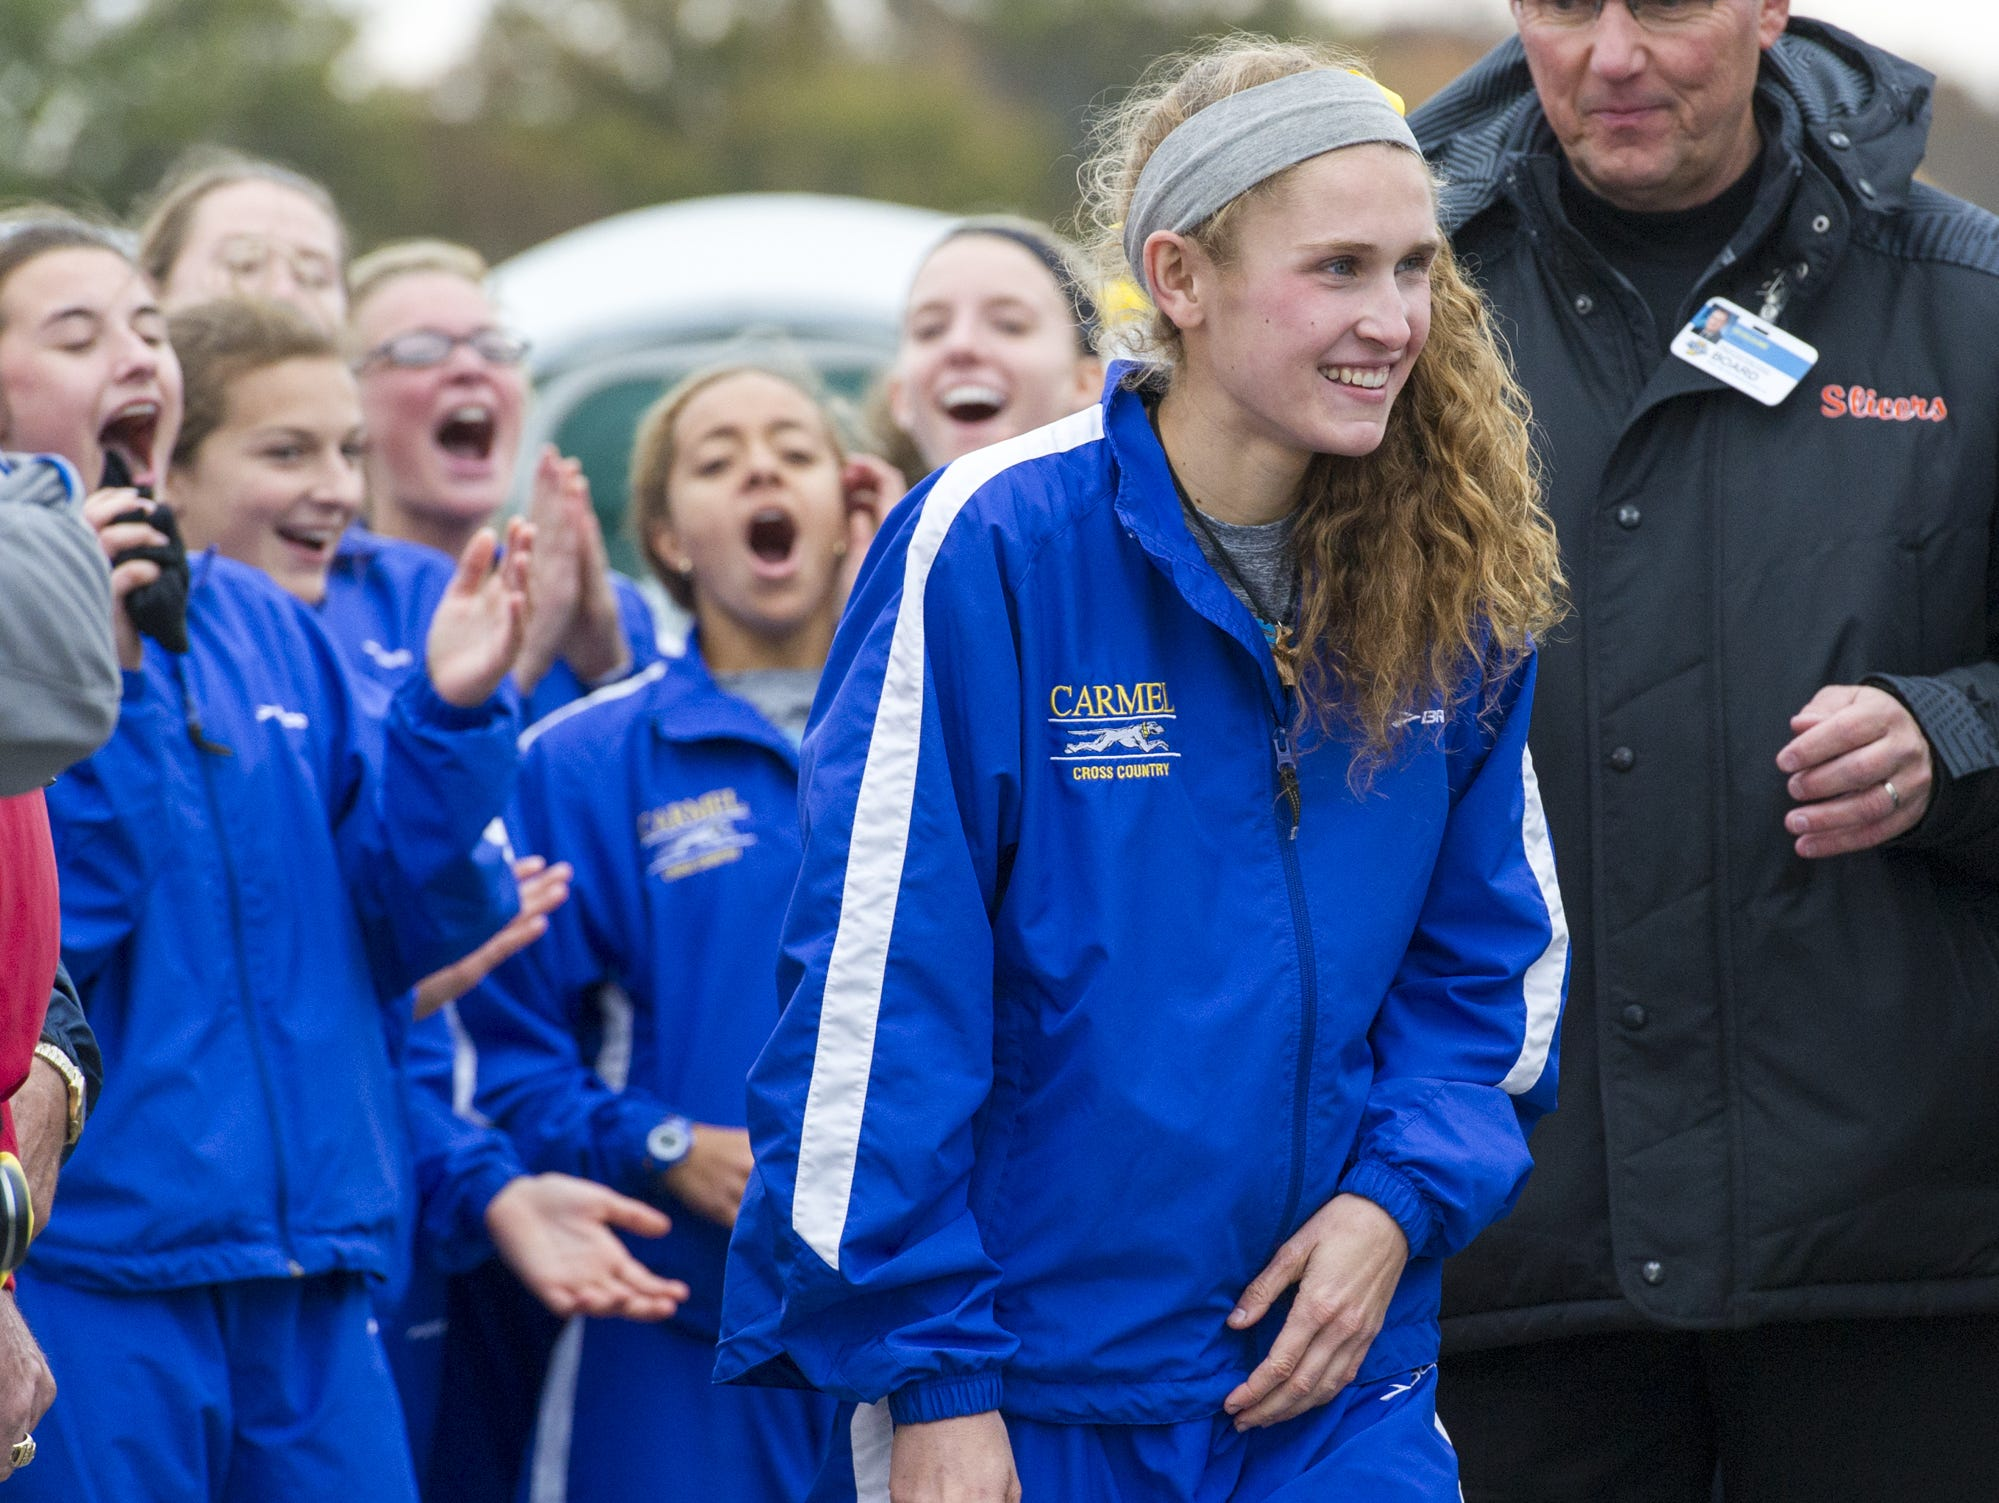 As her teammates cheer for her in the background, Carmel's Sarah Leinheiser is announced as the winner of the IHSAA Cross Country State Championship race in Terre Haute, Oct. 31, 2015.